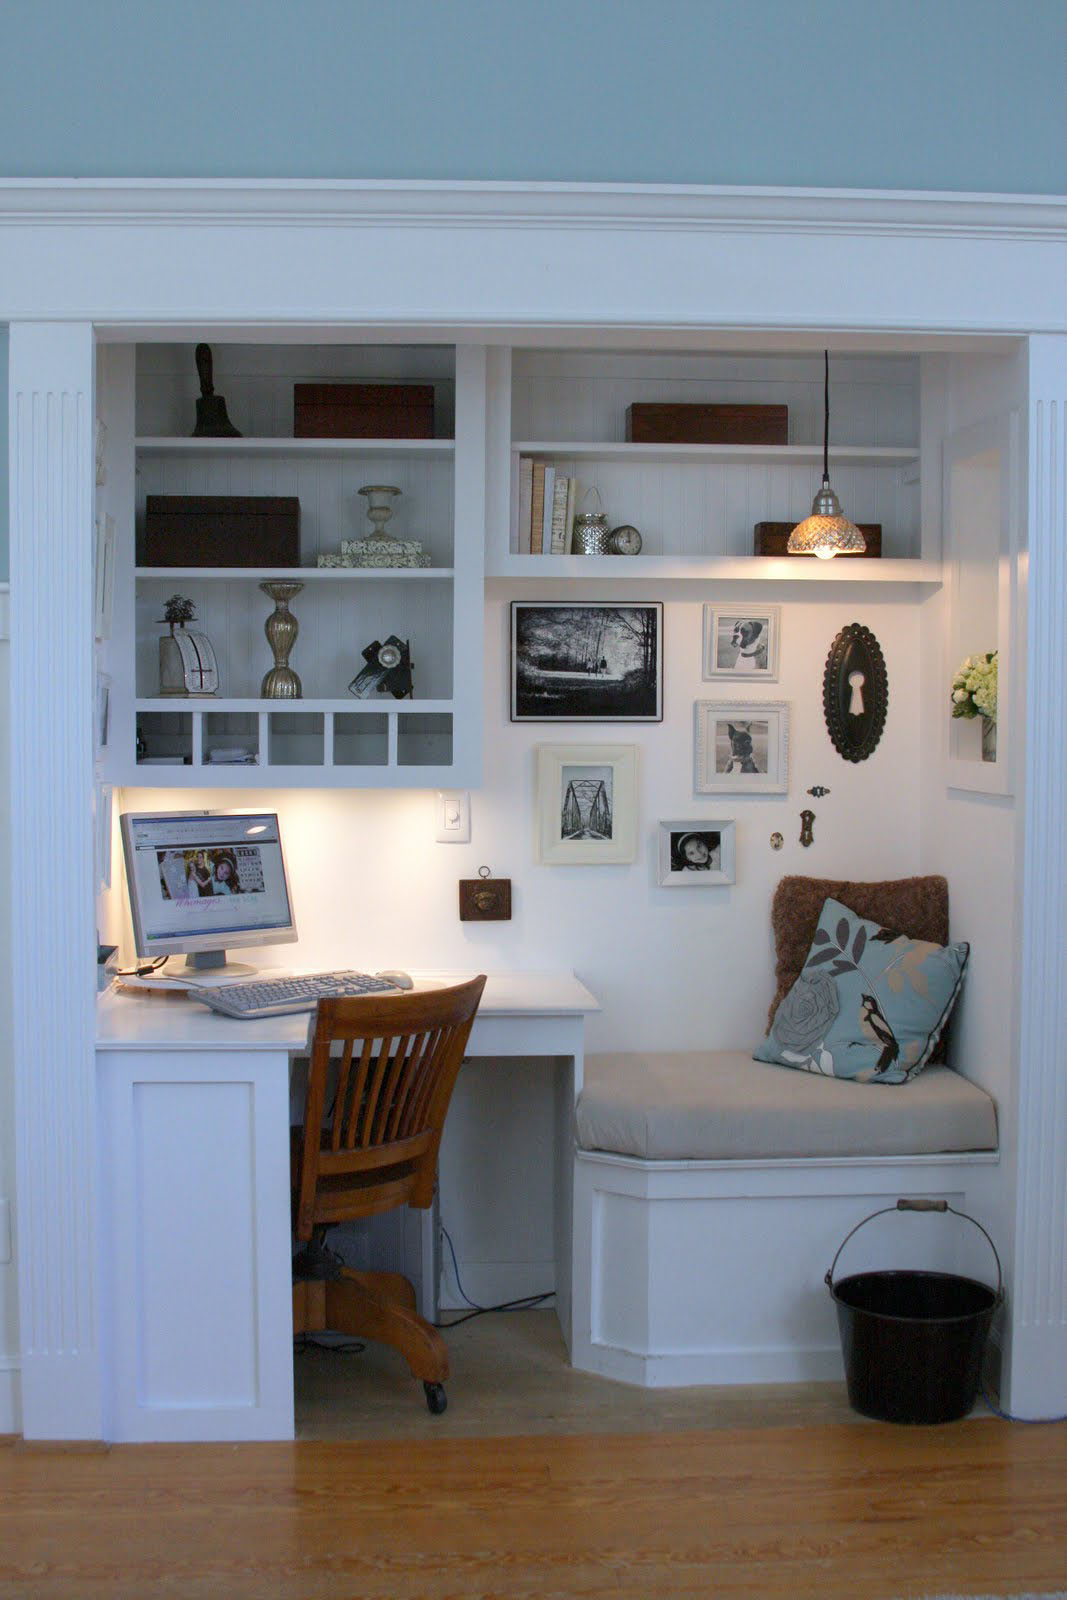 Elegant home office style 8 30 Creative Home Office Ideas: Working from Home in Style